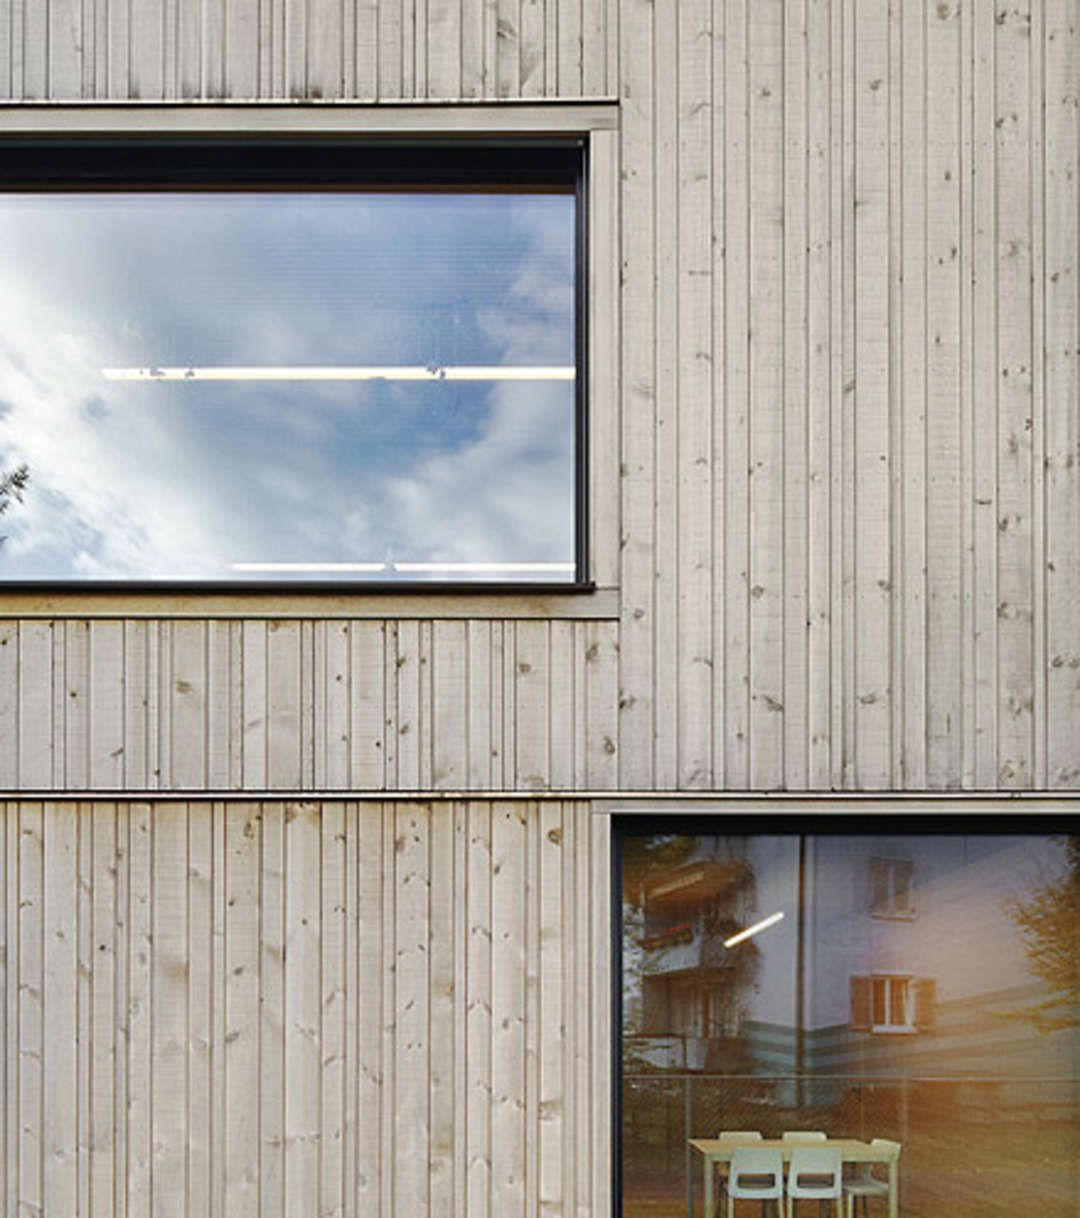 A Passive house, core walls and ceiling in concrete, preassembled construction for highly insulated external elements